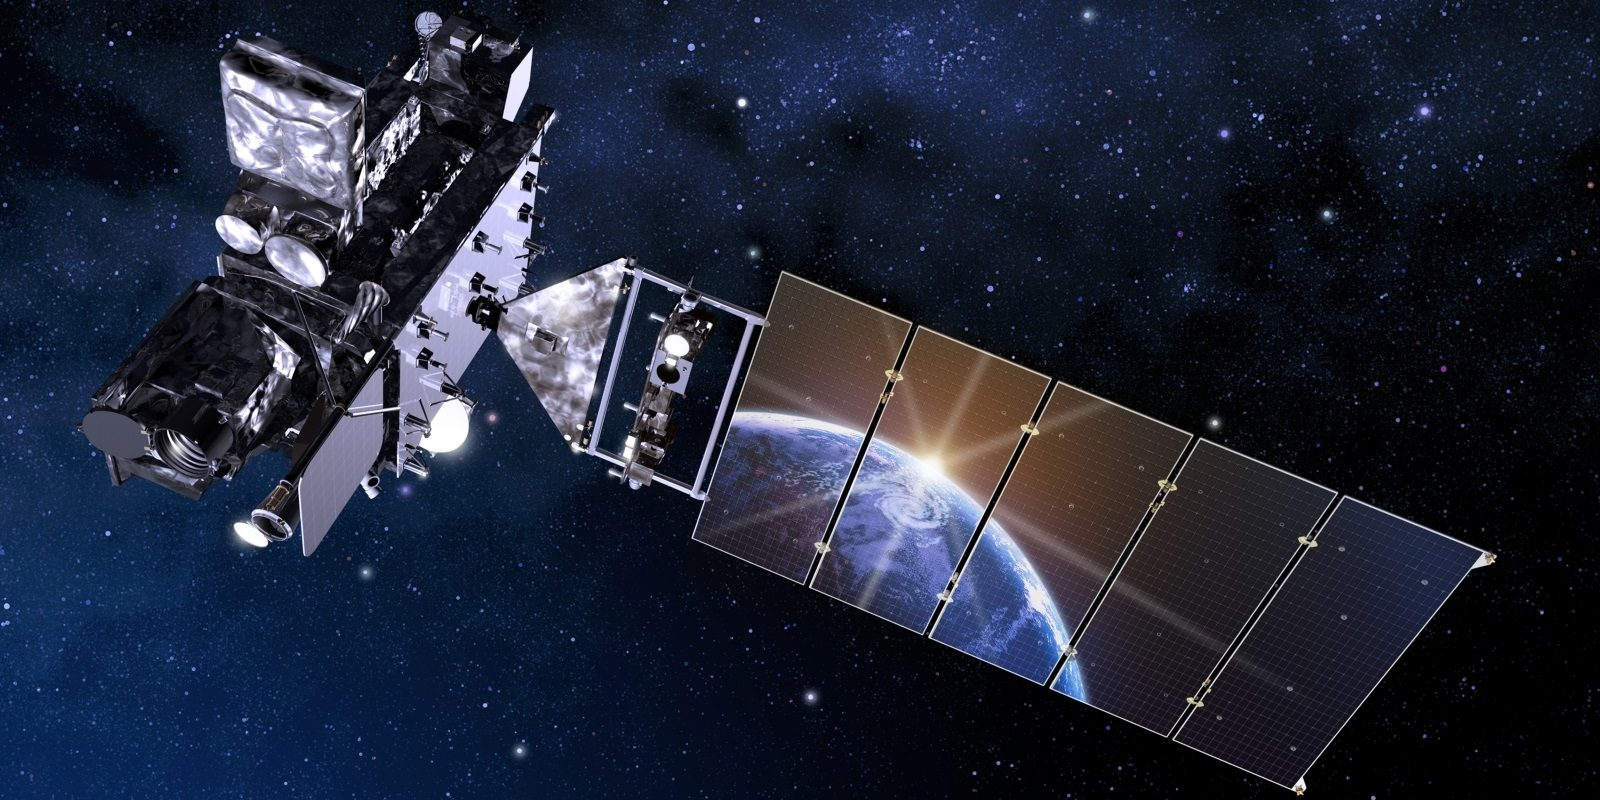 Artist's rendering of the GOES-16 satellite in orbit.